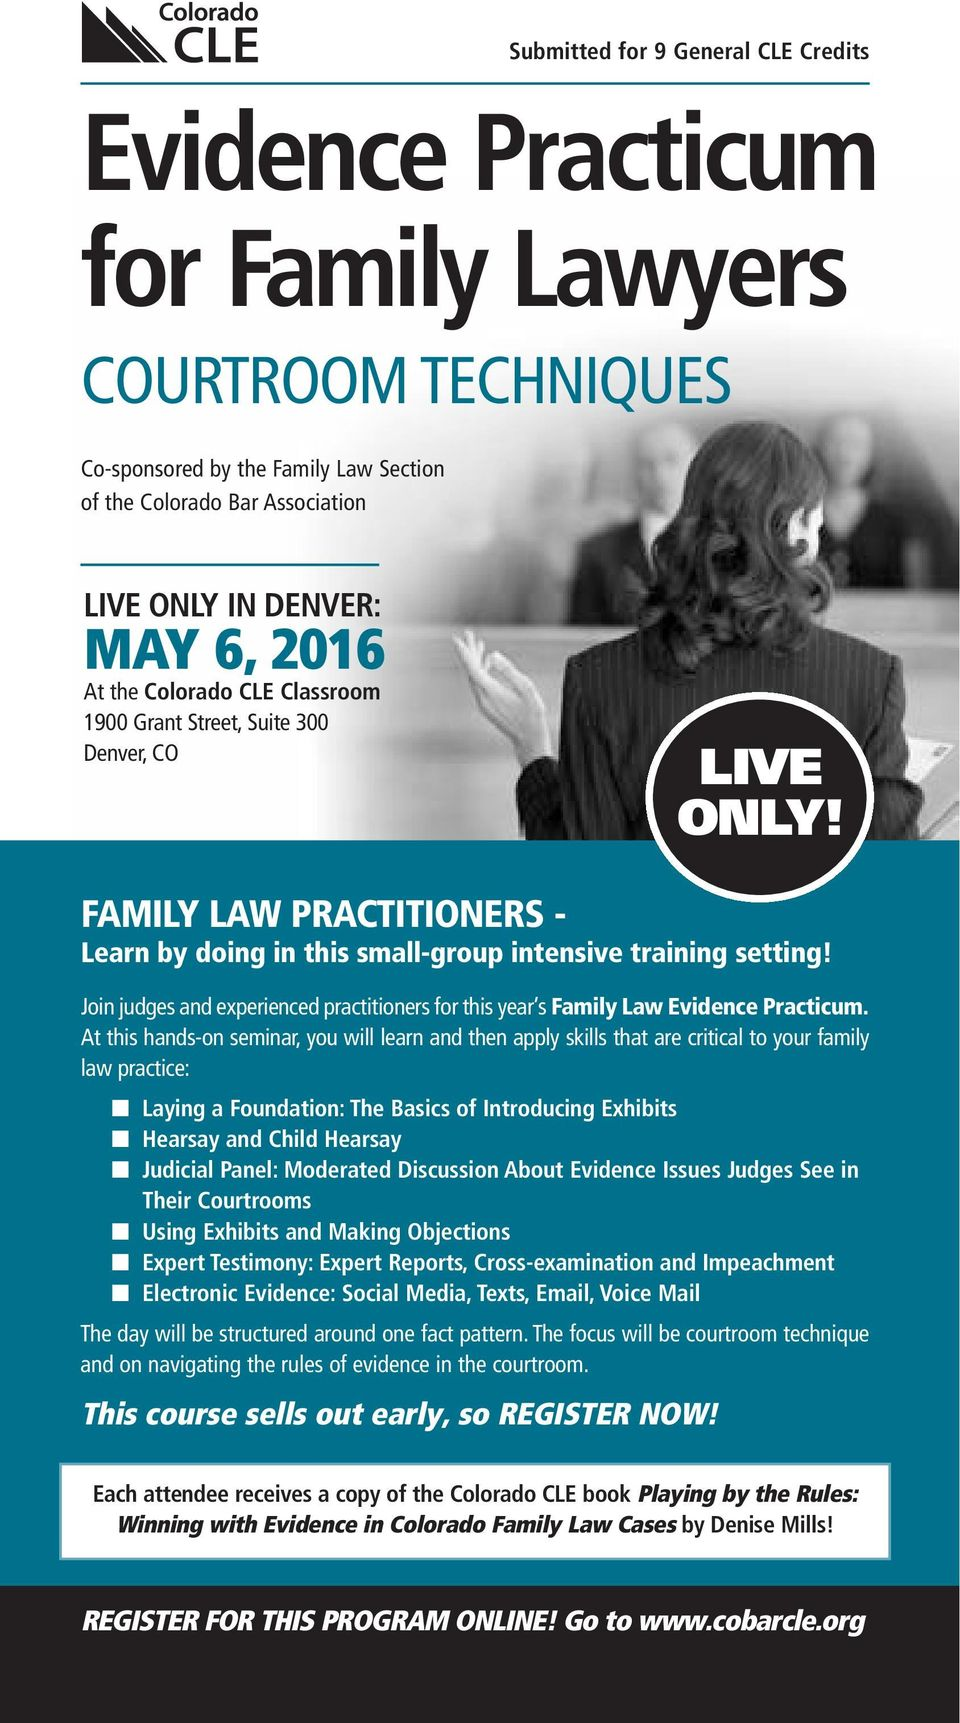 Join judges and experienced practitioners for this year s Family Law Evidence Practicum.